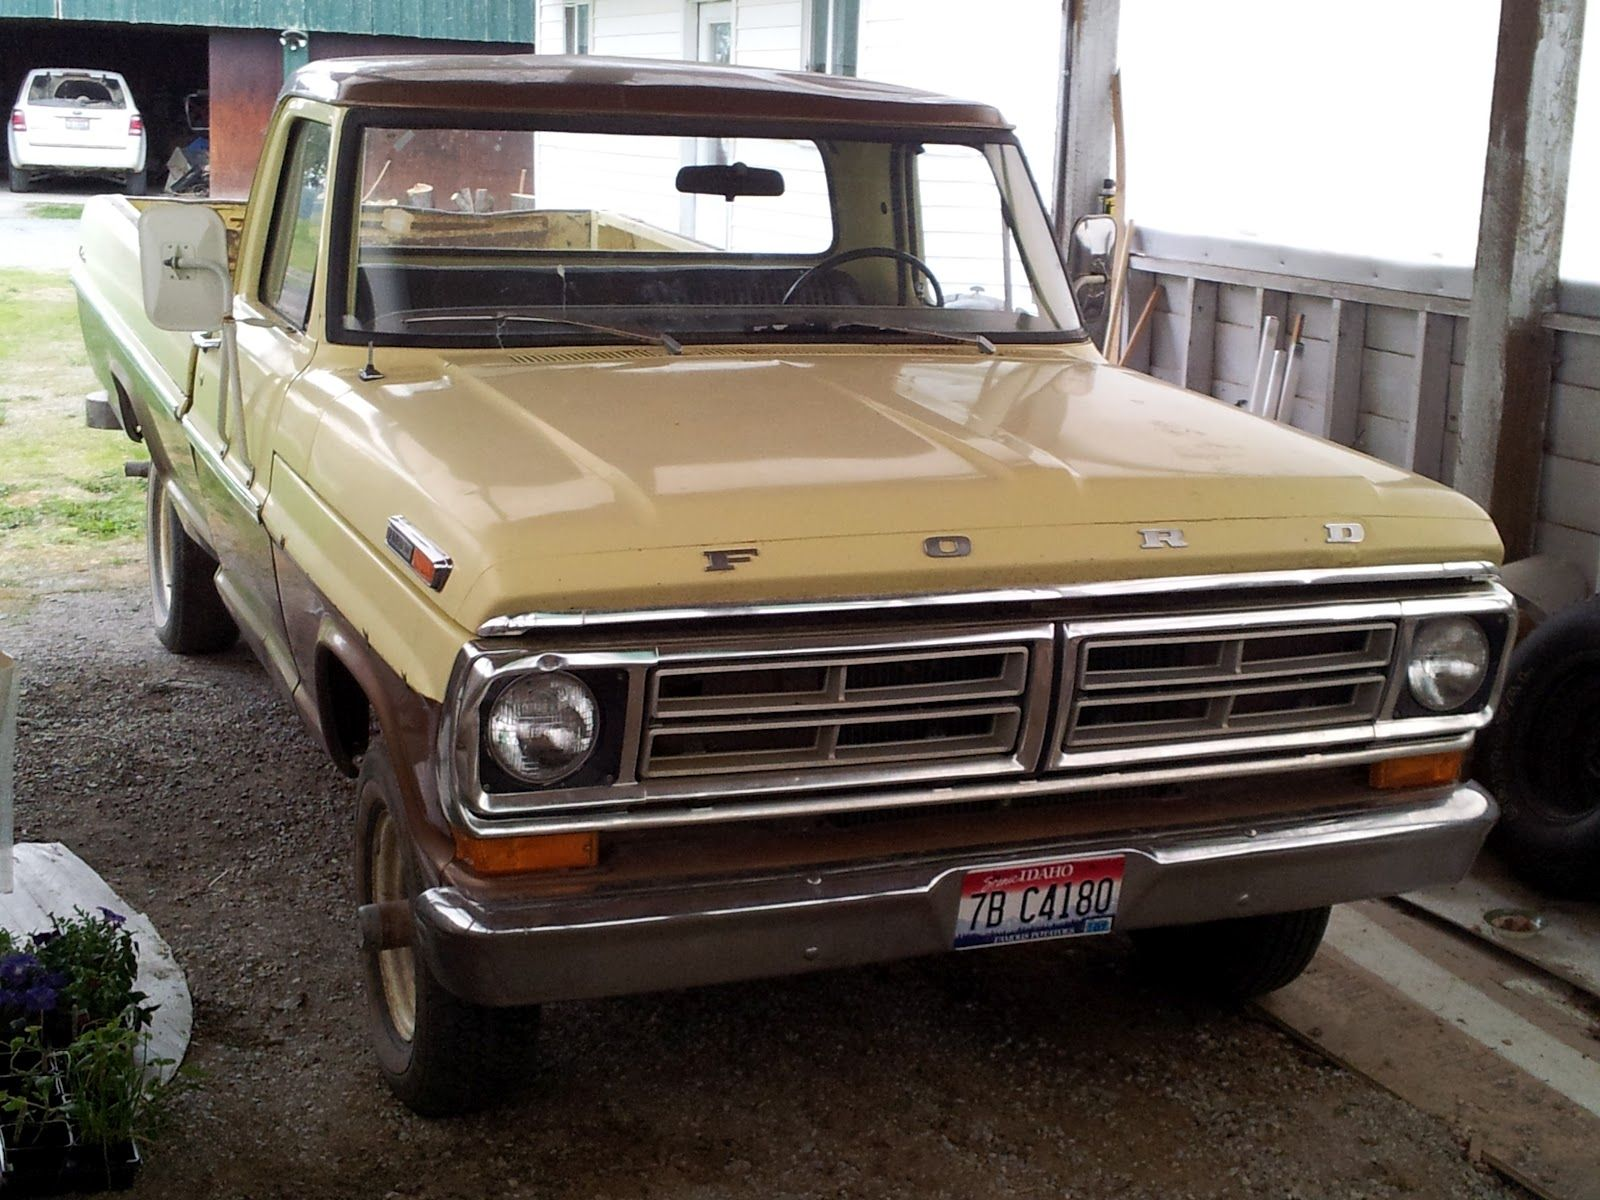 Our sweet ride: a 72 Ford F100.